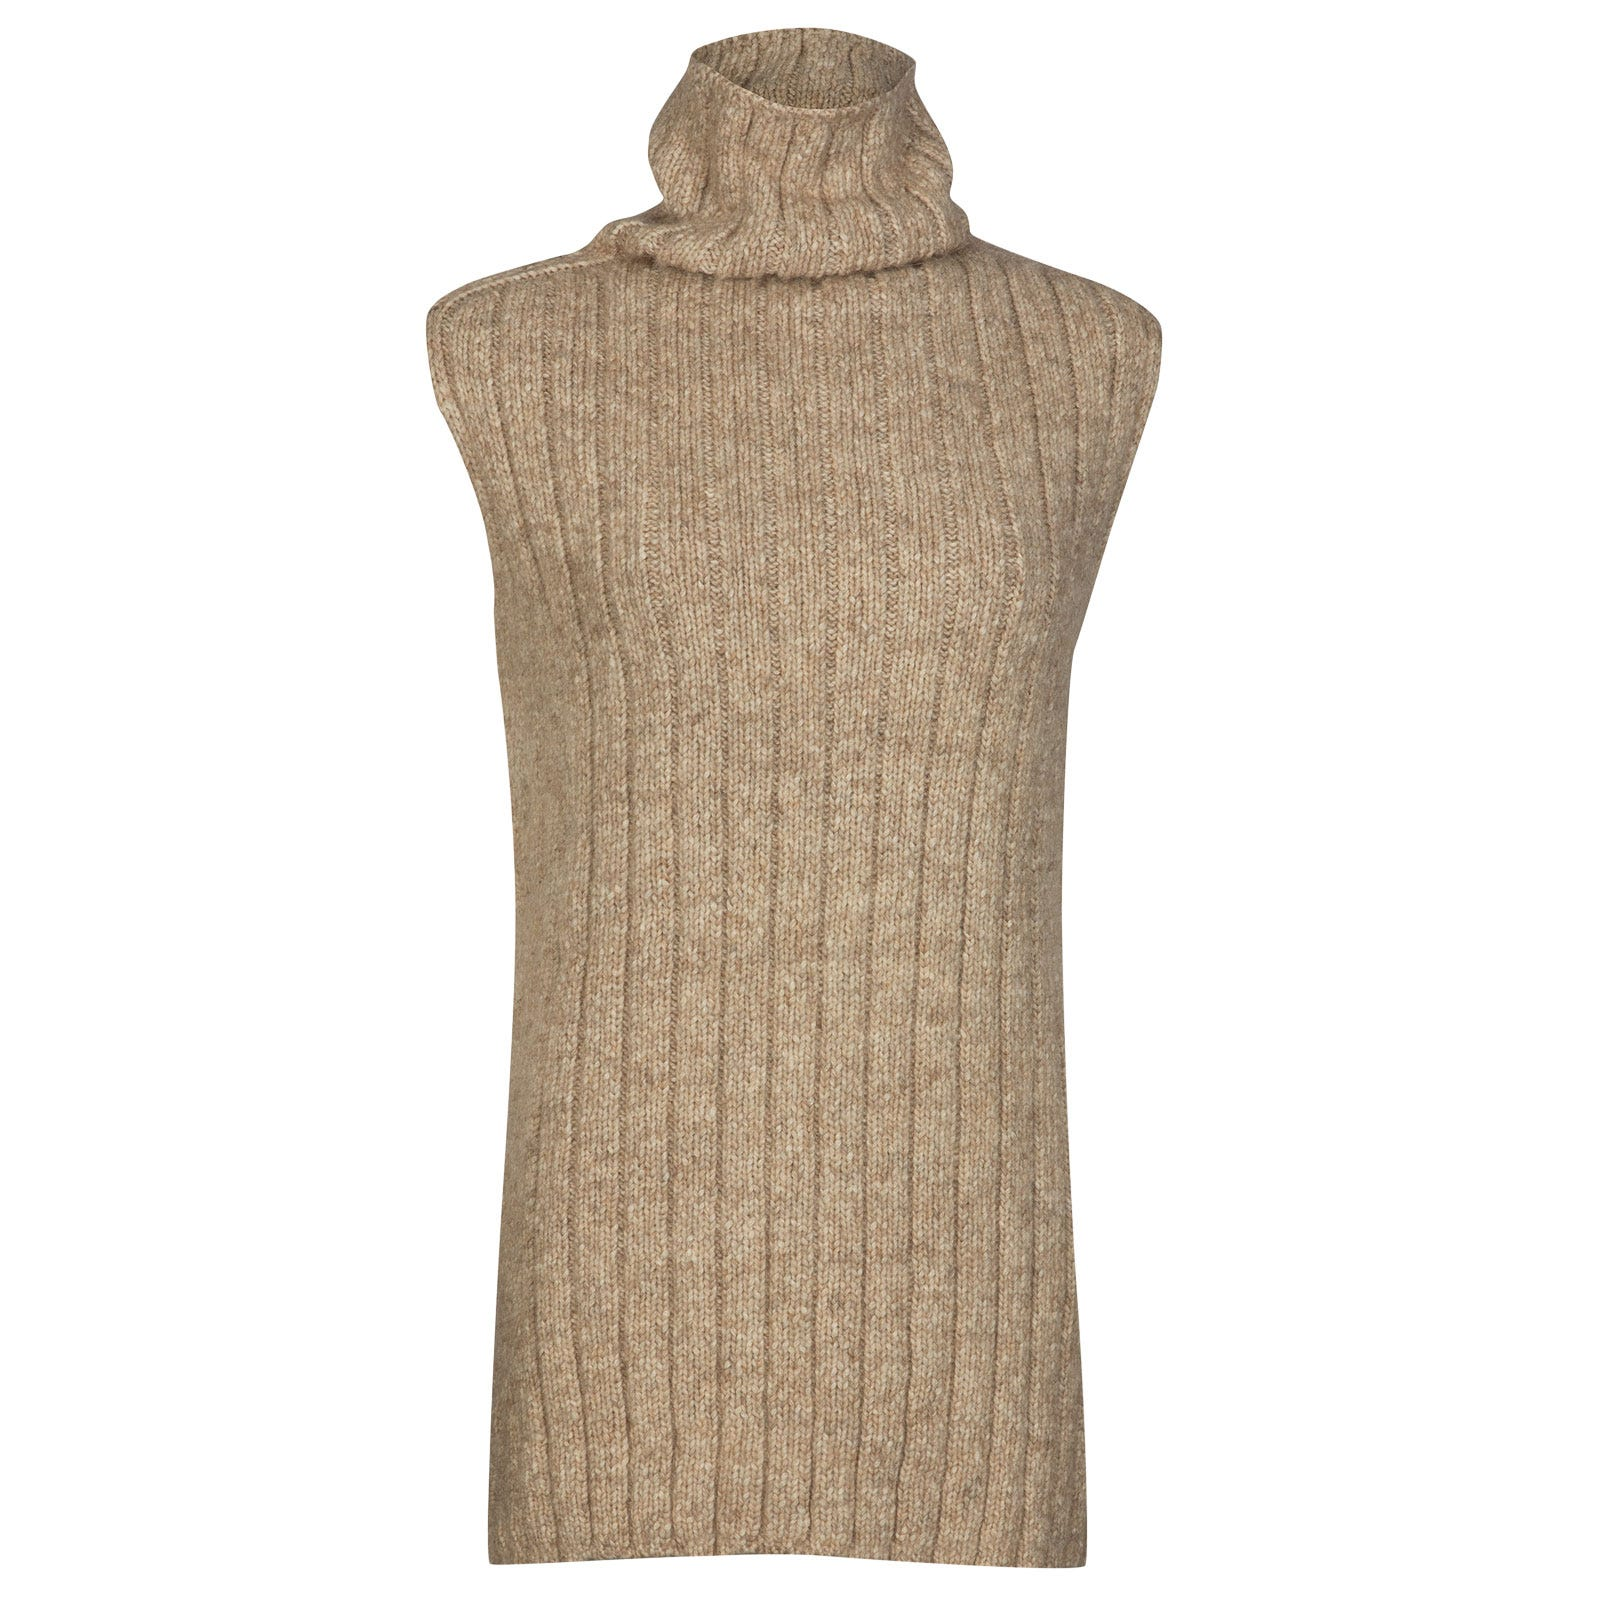 John Smedley conwy Alpaca, Wool & Cotton Sweater in Camel-S